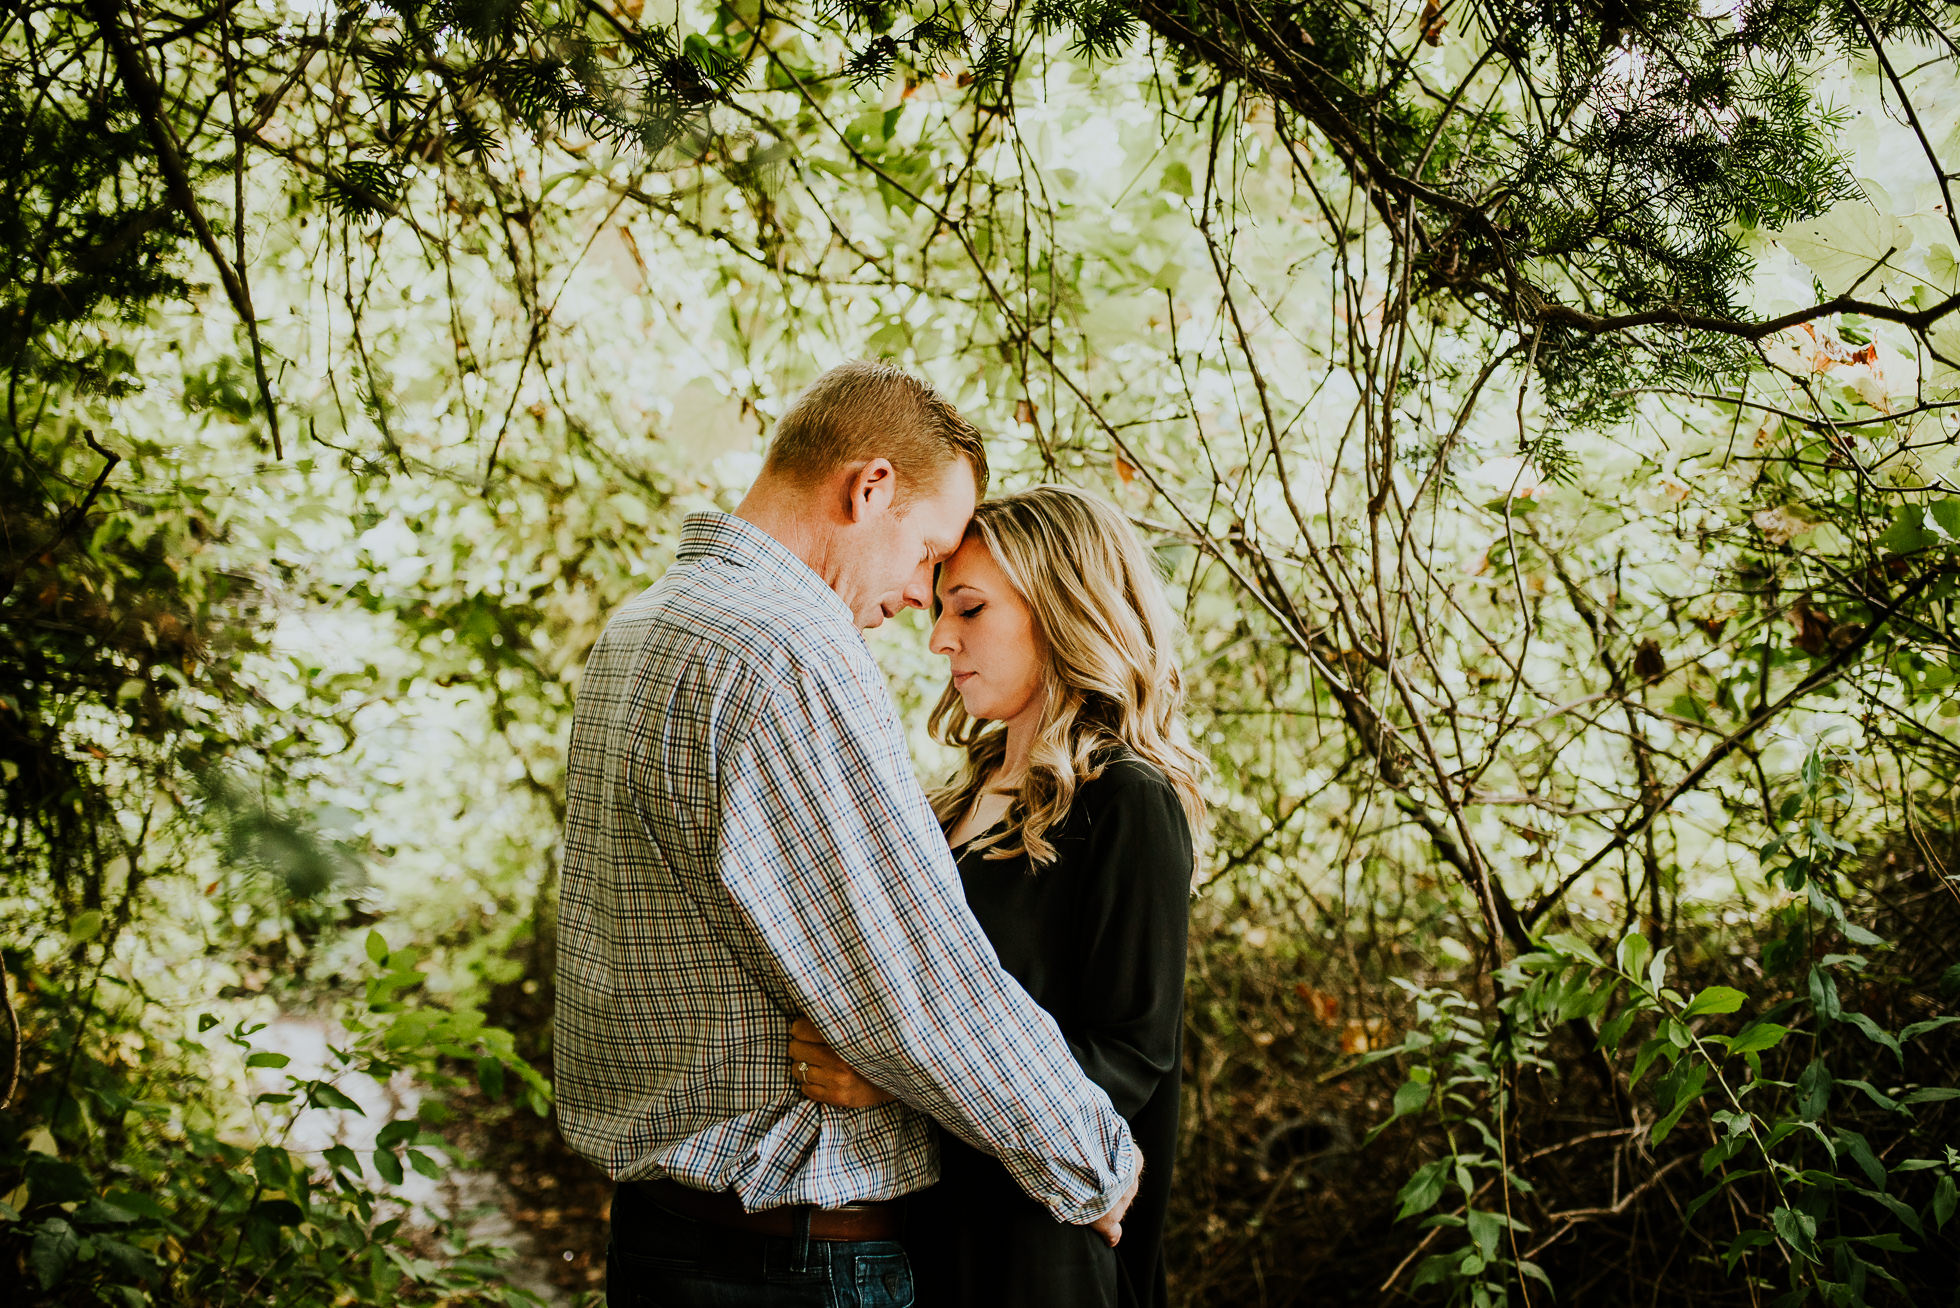 Glen Cove NY engagement session photographed by Traverse the Tides